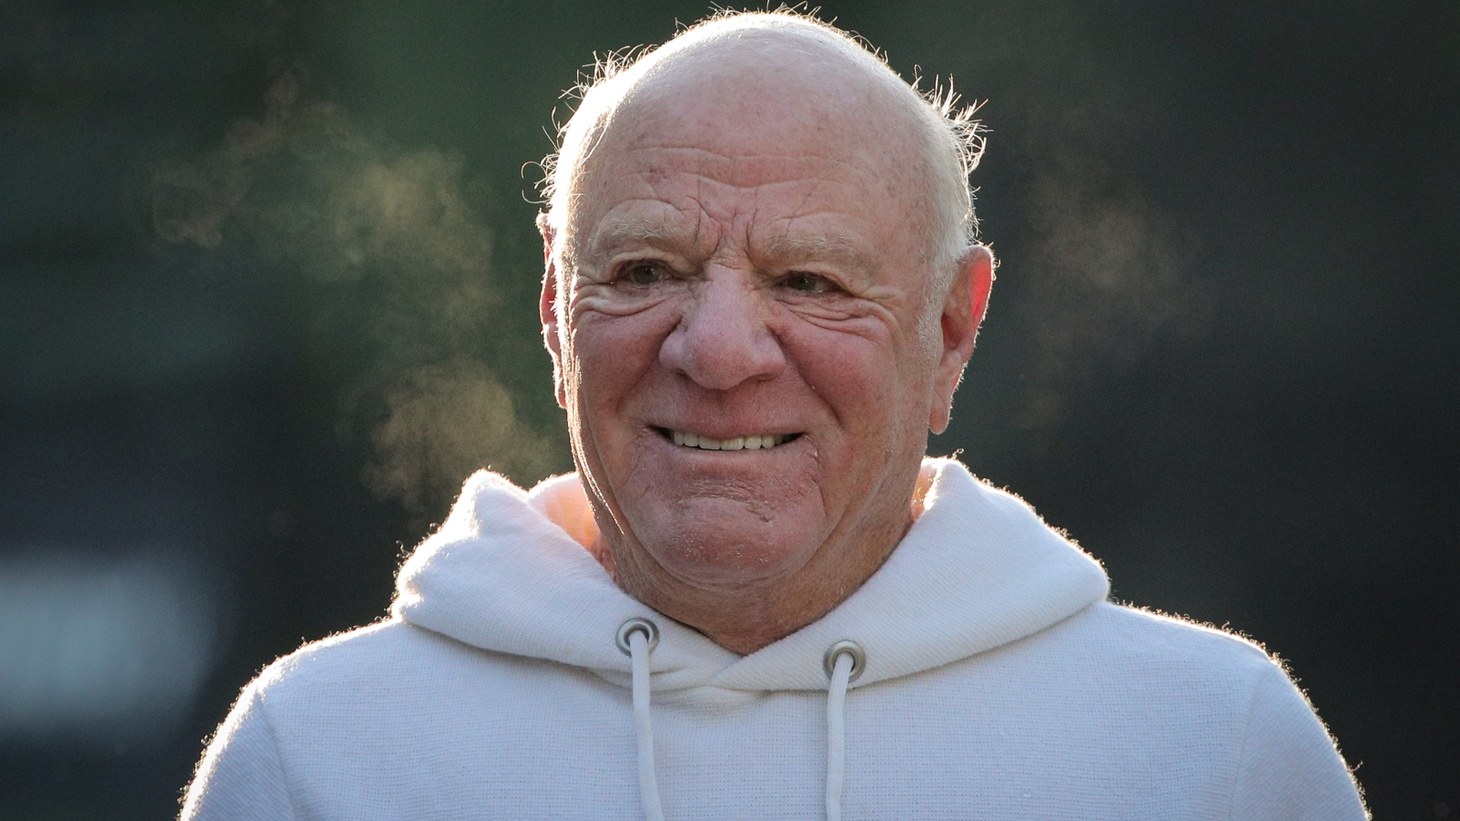 Barry Diller, Chairman and Senior Executive of IAC/InterActiveCorp and Expedia, Inc., attends the annual Allen and Co. Sun Valley media conference in Sun Valley, Idaho, U.S., July 11, 2019.